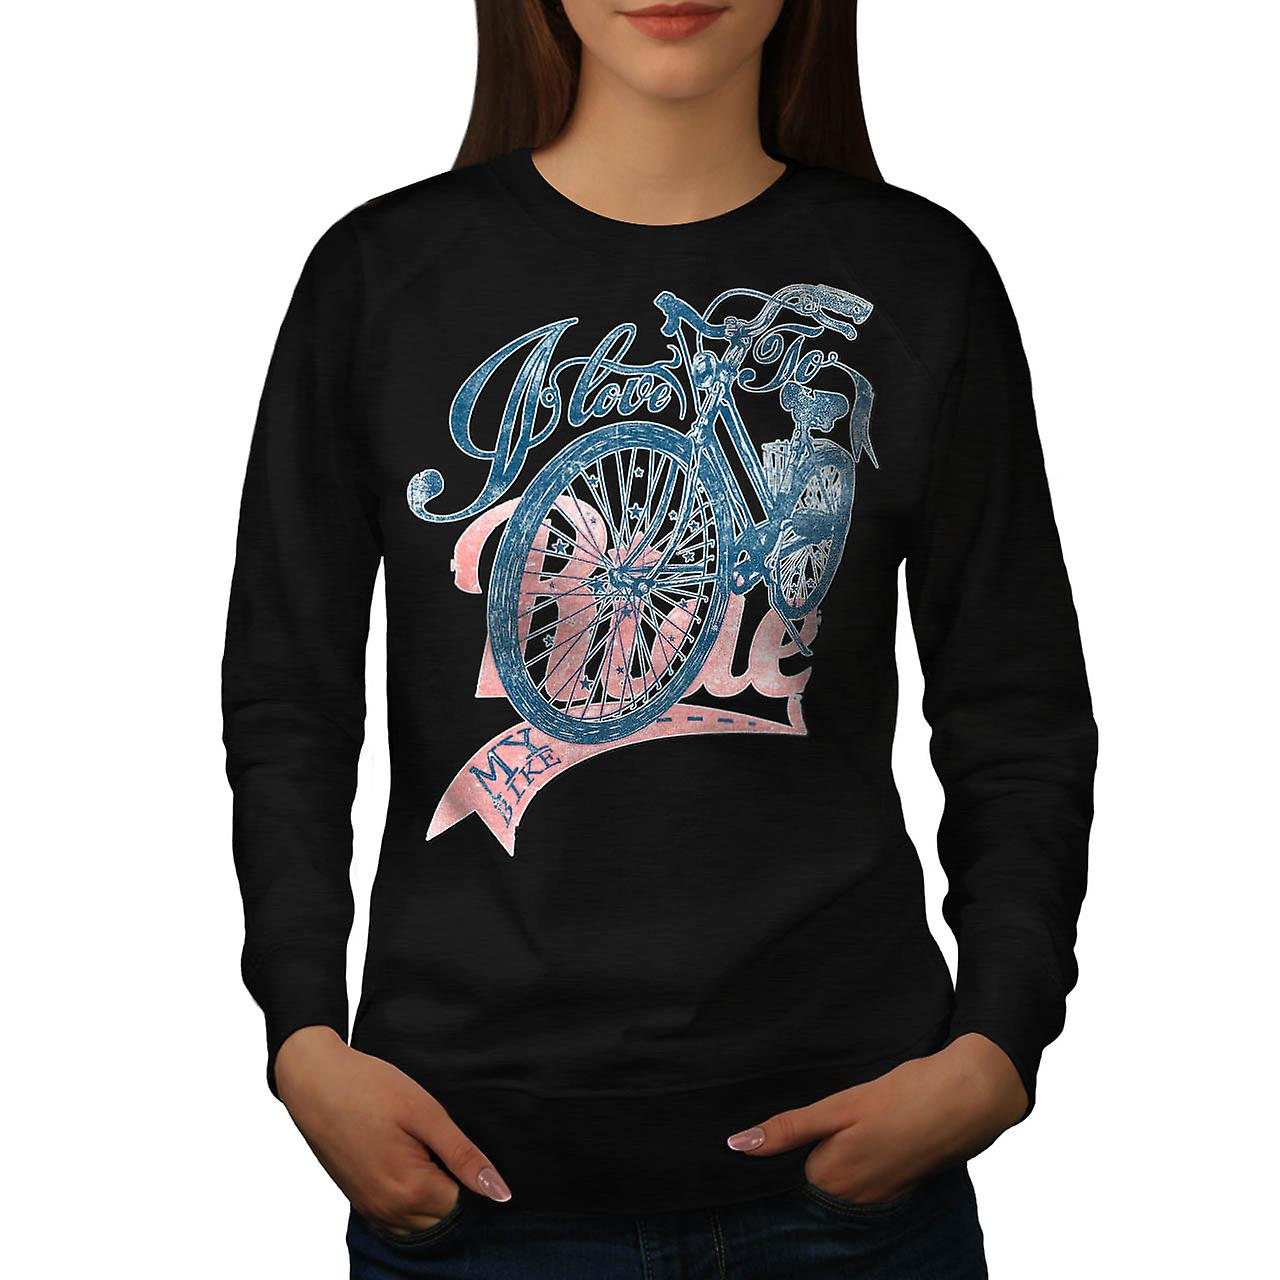 Love To Ride Cycling Bike Pedal Women Black Sweatshirt | Wellcoda